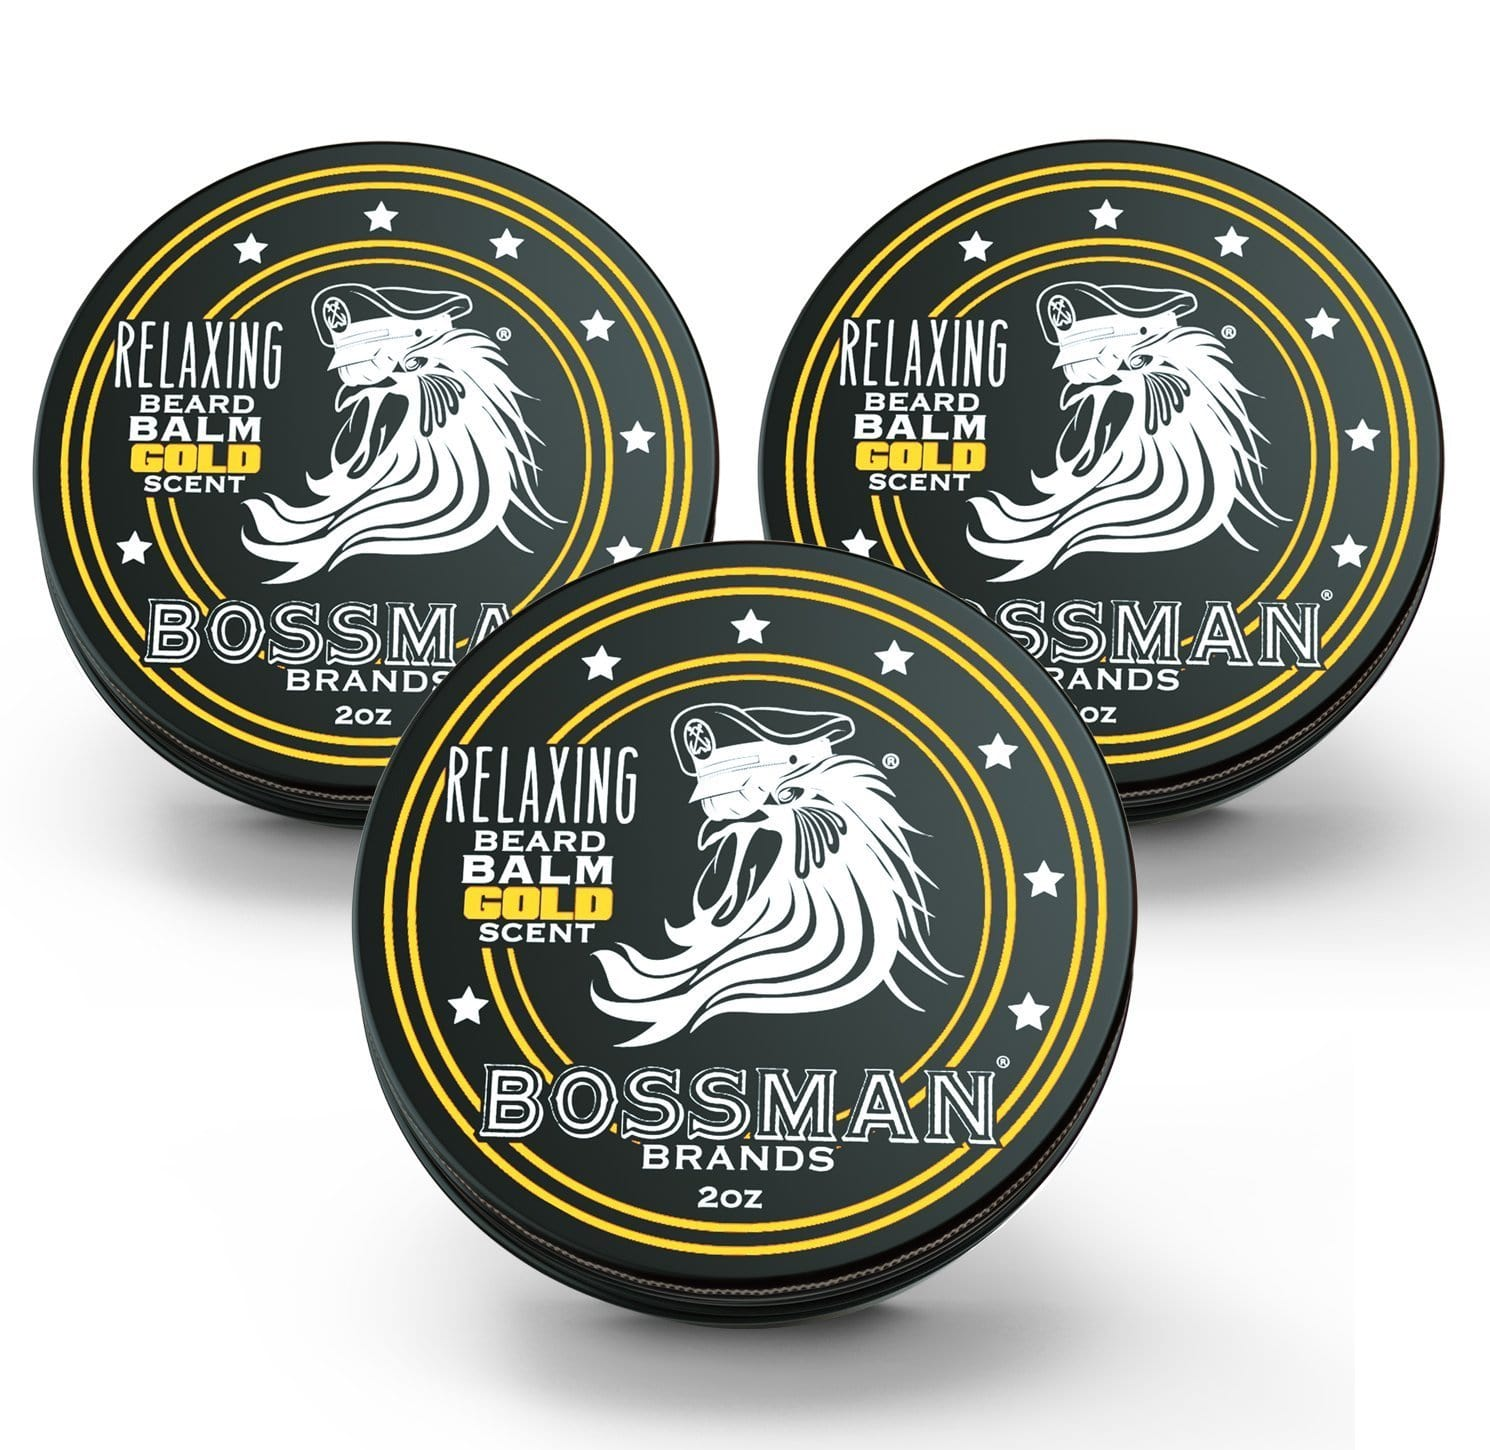 Bossman Relaxing Beard Balm - Gold Scent 3 Pack